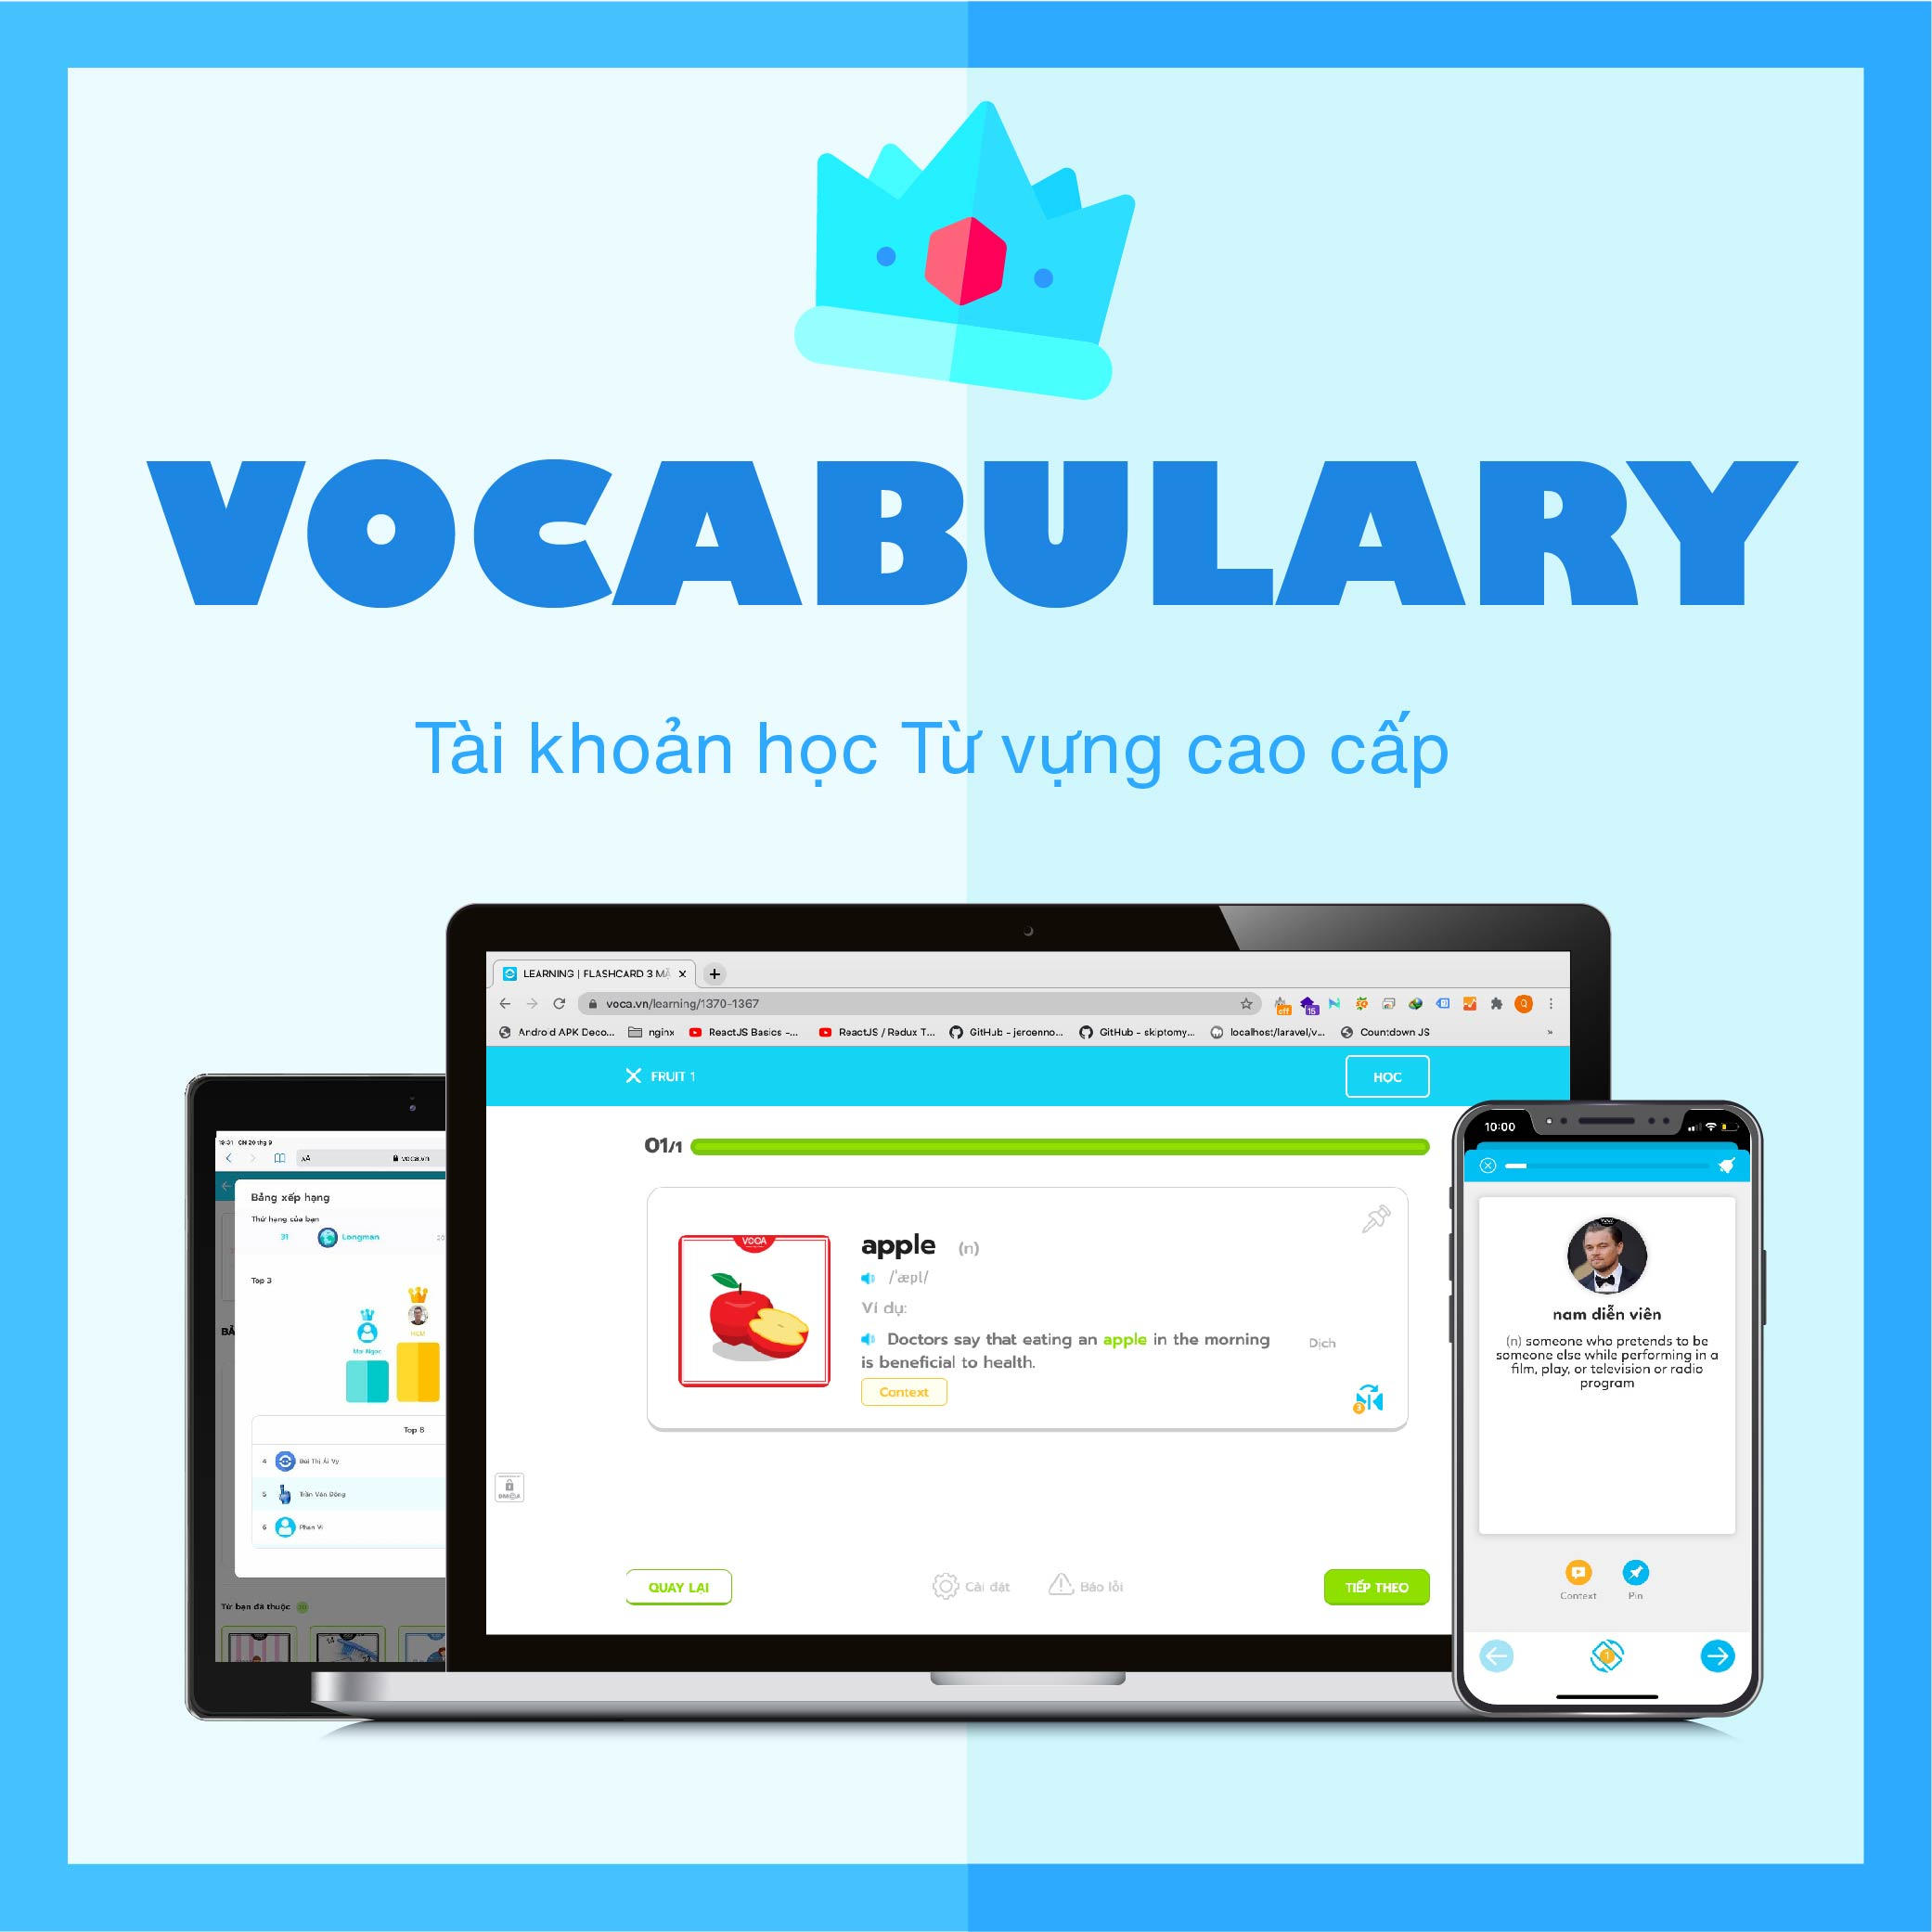 VOCABULARY VIP